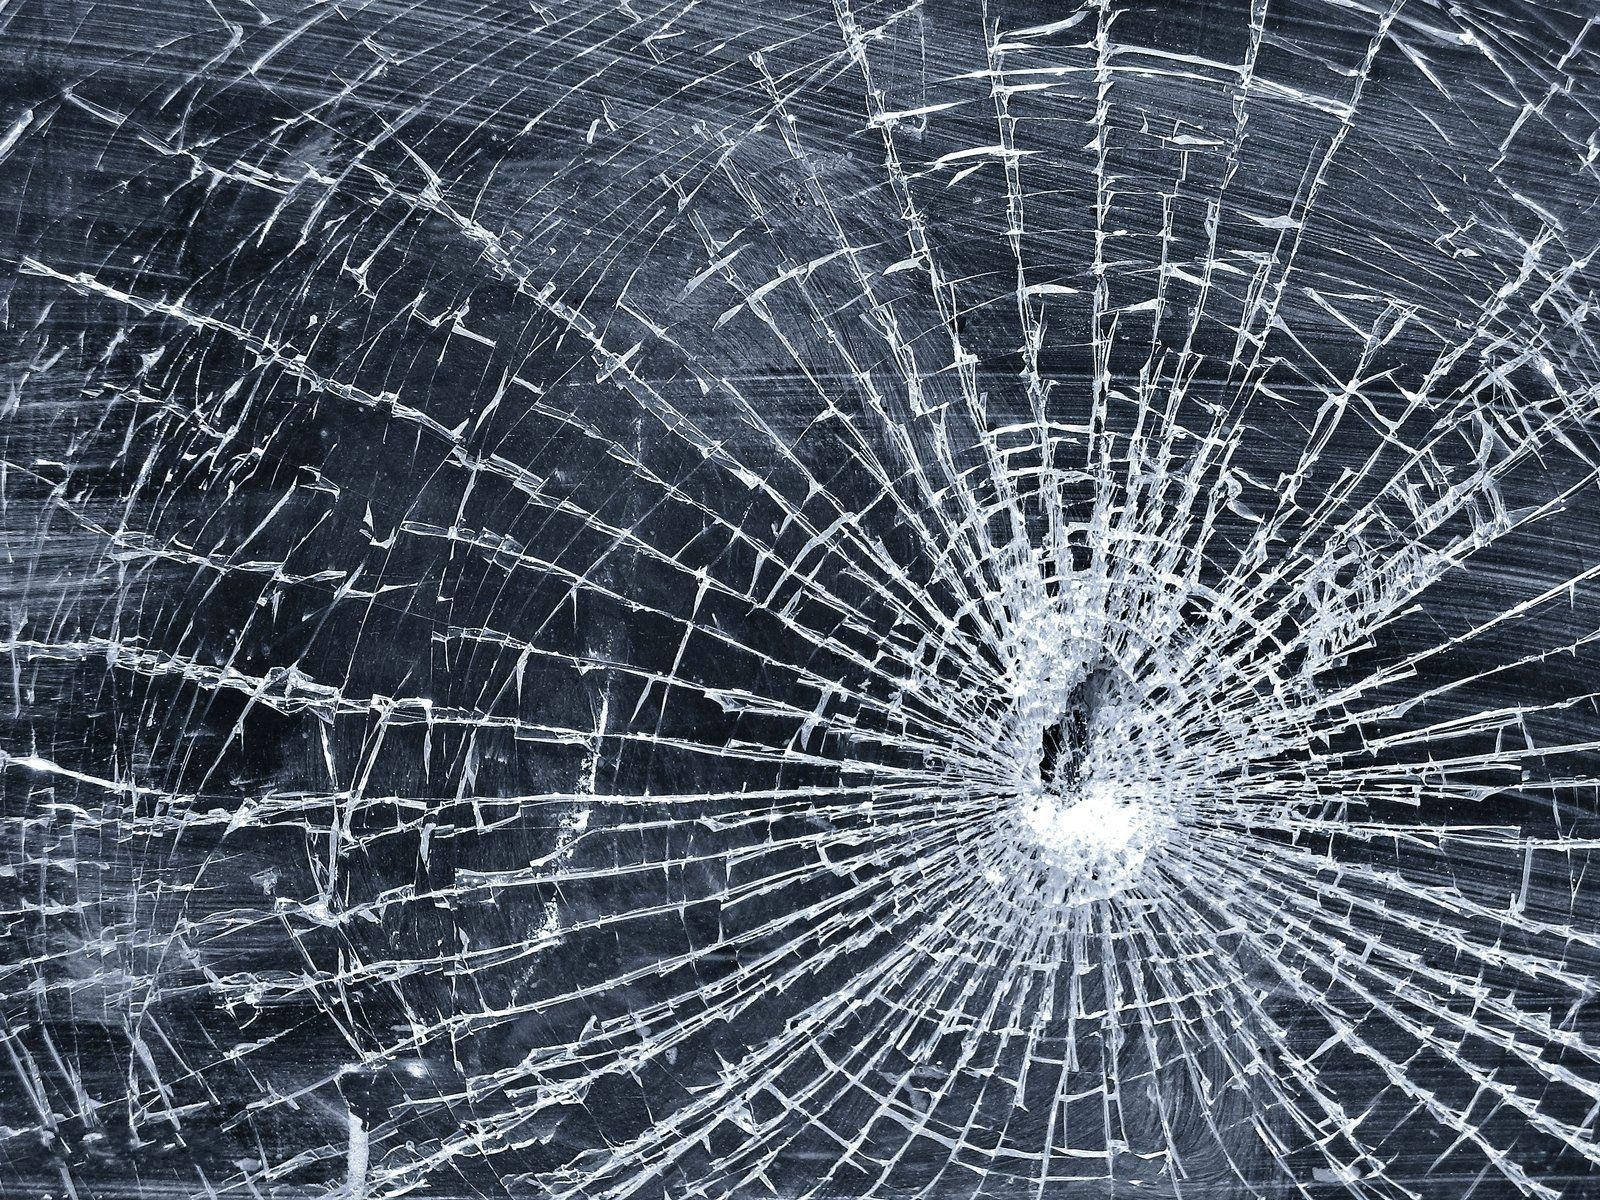 Hd Wallpapers Cracked Screen Wallpaper Download Broken Glass